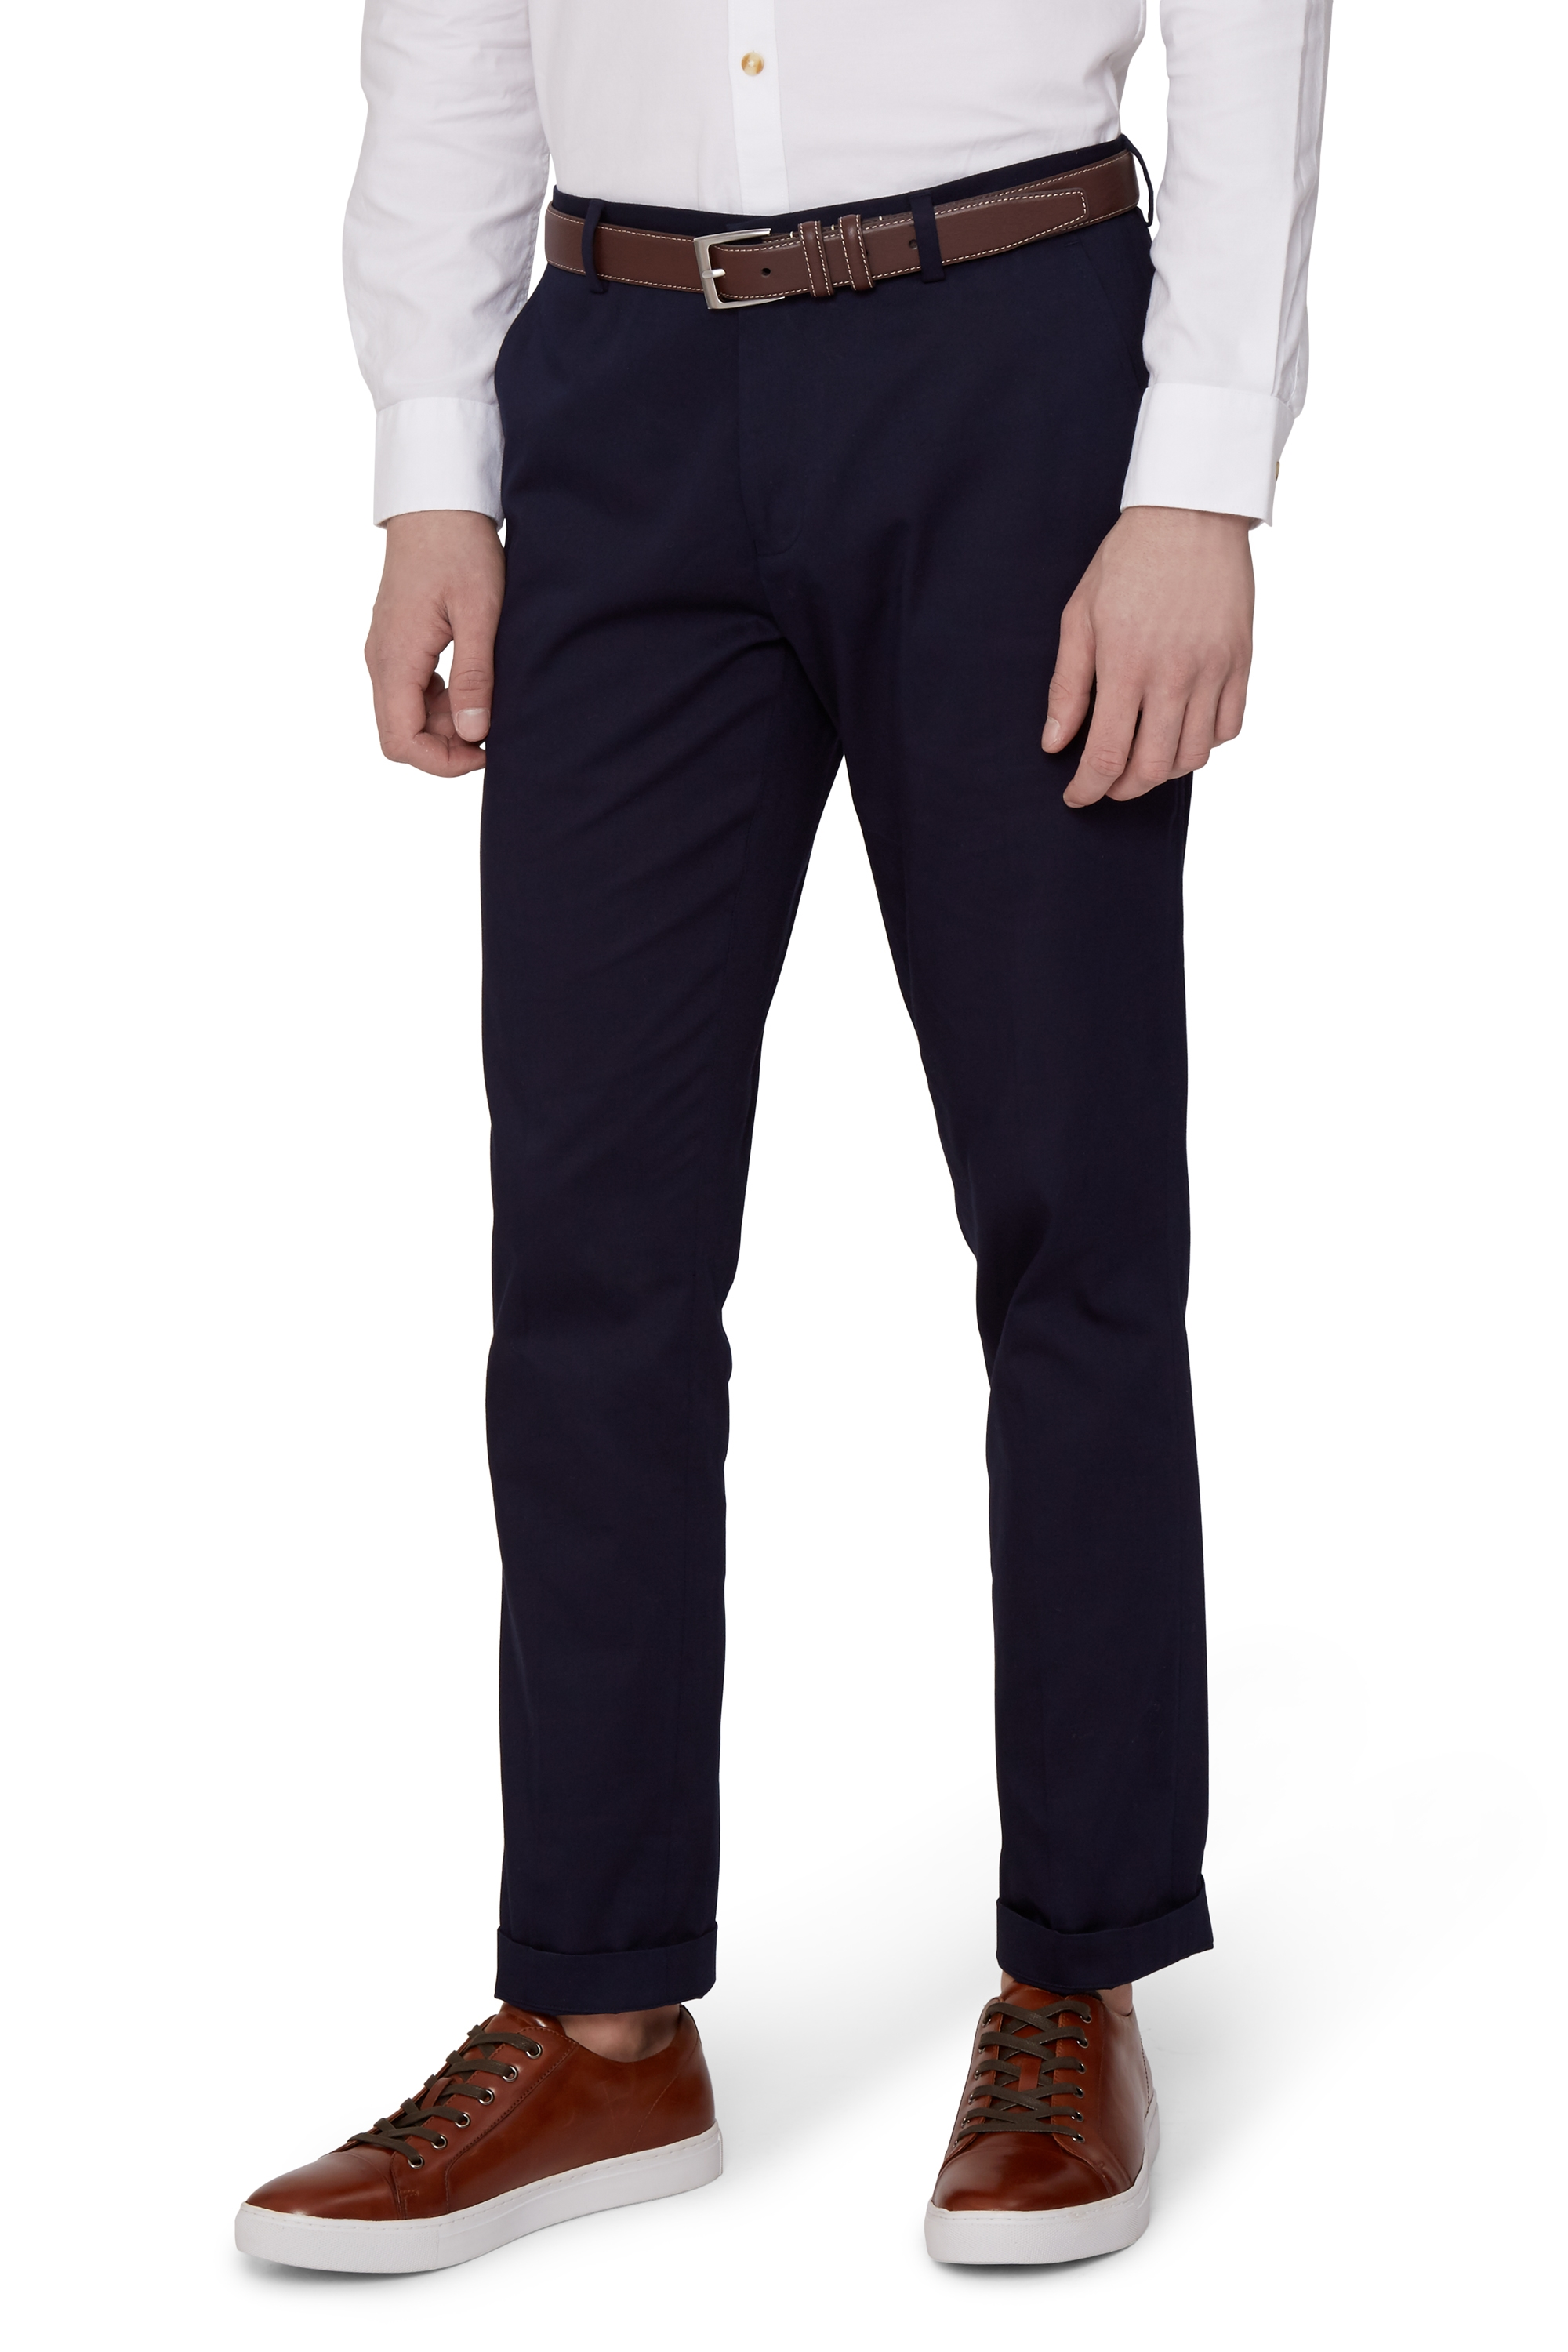 Mens Moss Bros Casual Trousers Chinos Jeans Slim Fit Cotton Pants ...